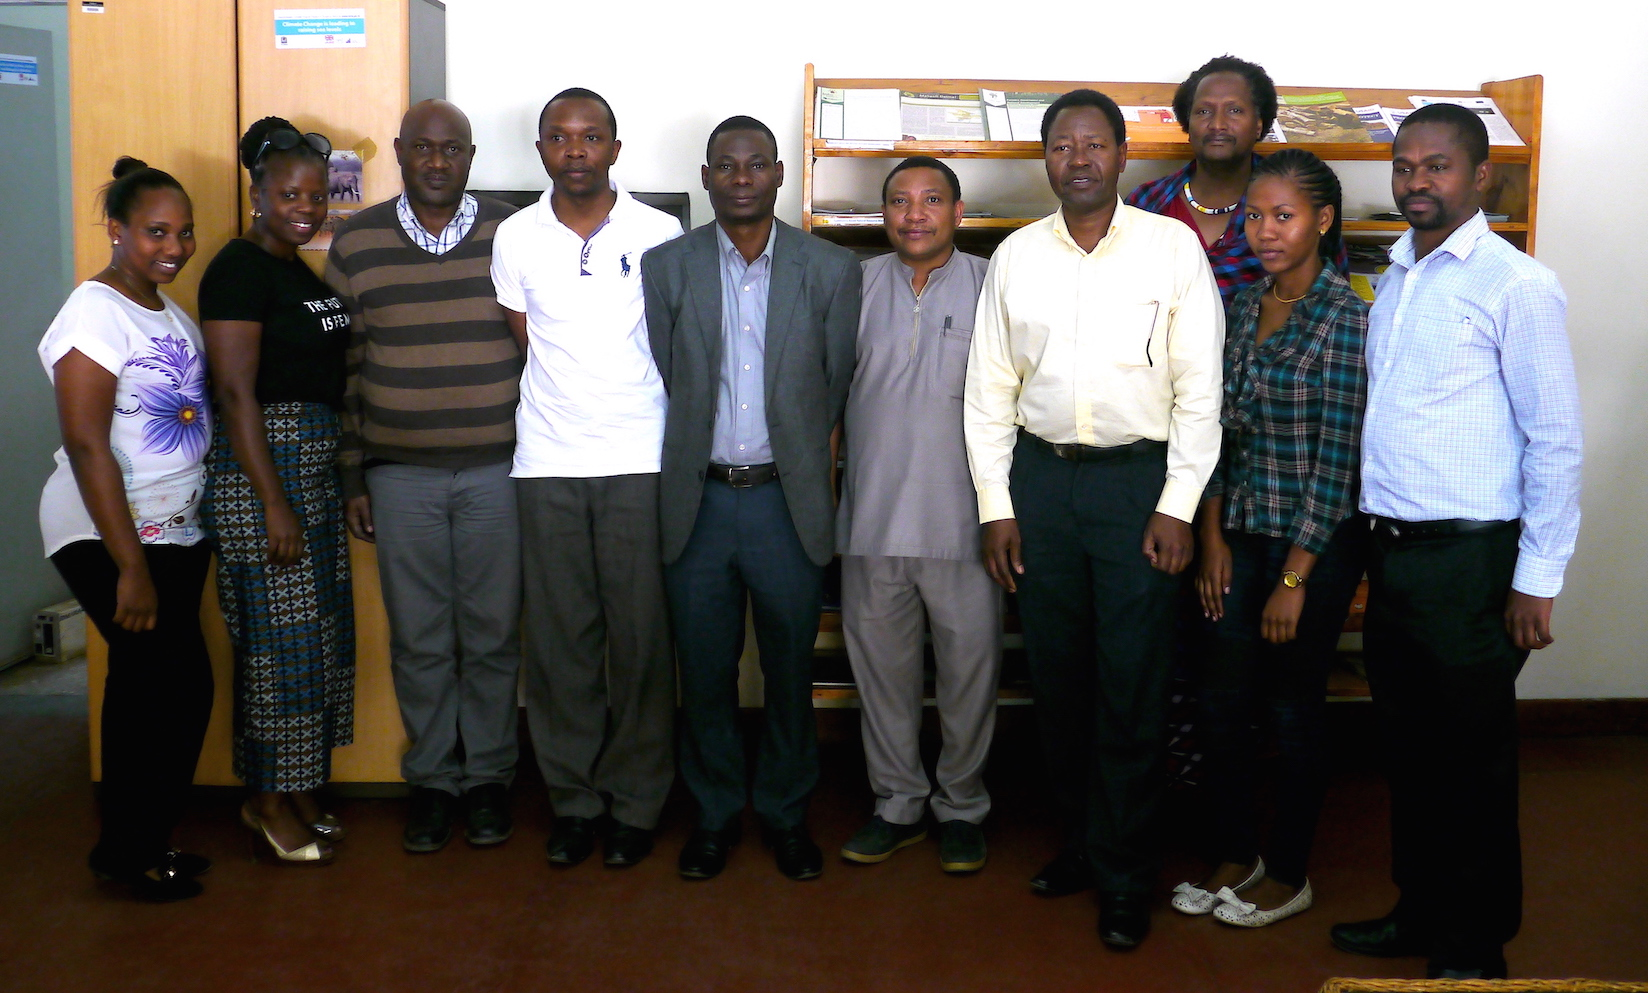 NES TANZANIA LAUNCHED ITS NATIONAL STEERING COMMITTEE MEETING